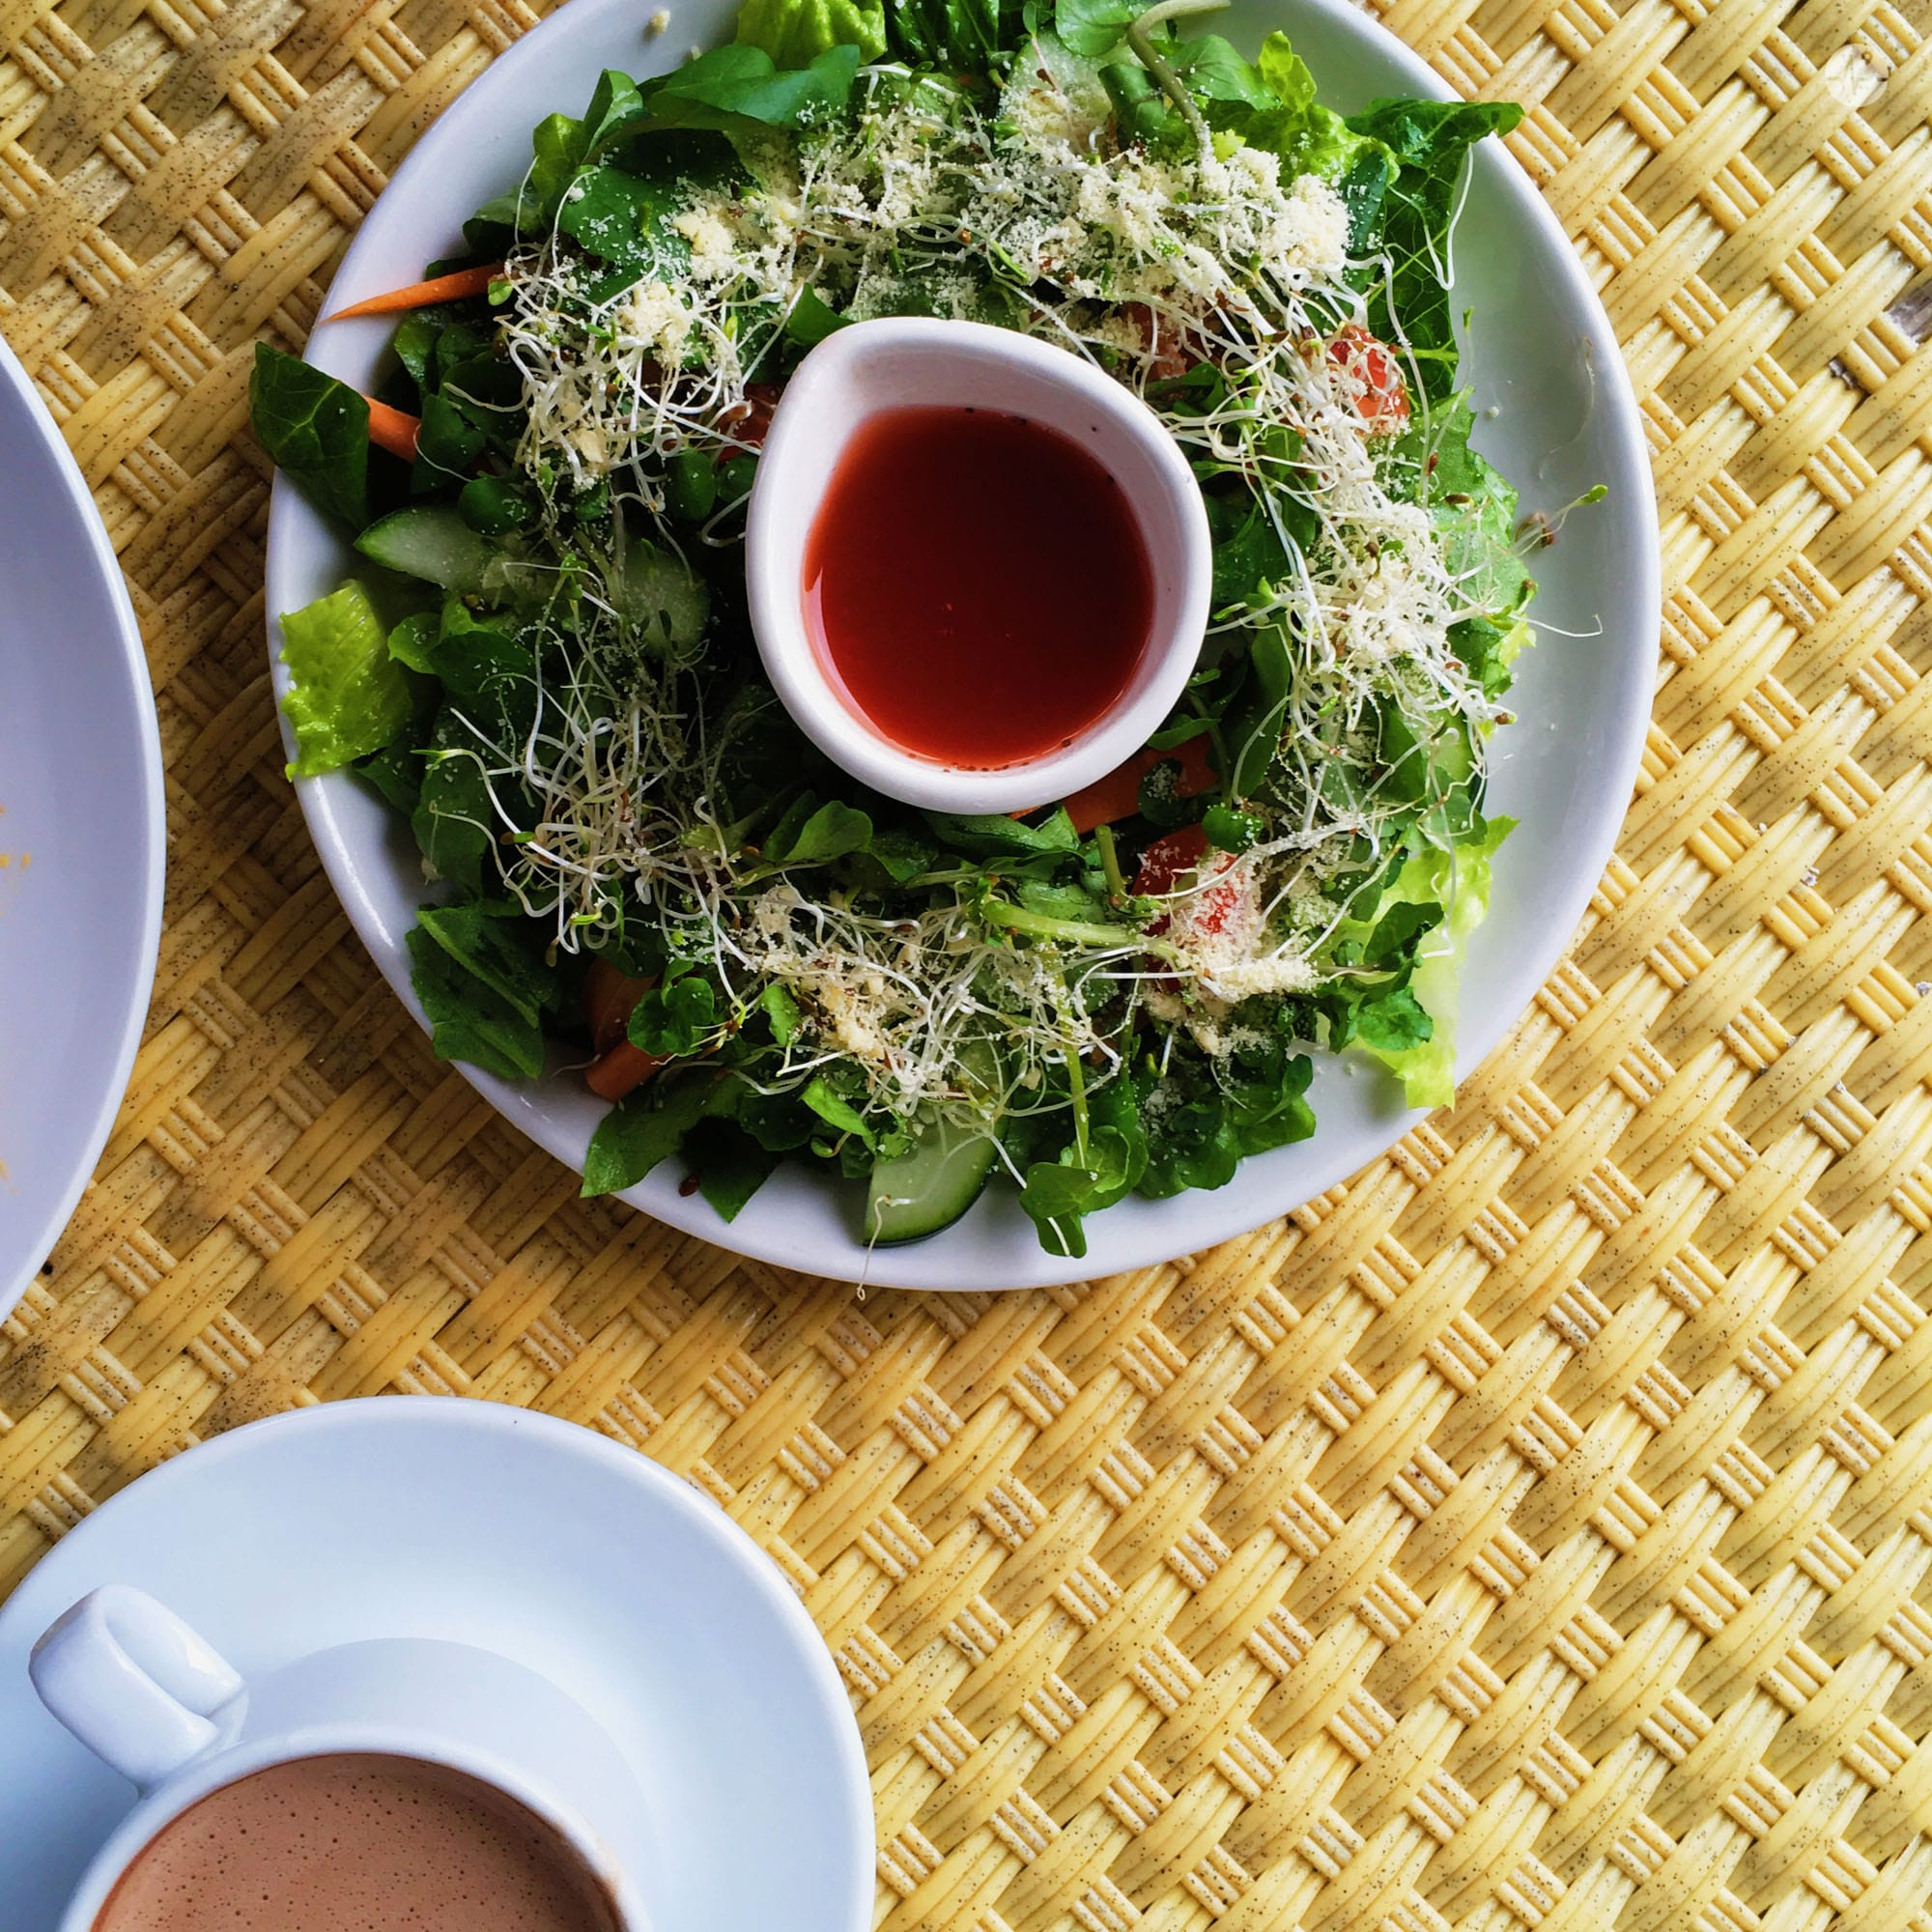 Photo of Farm Fresh Green Salad with Strawberry Vinaigrette in Cafe Sabel